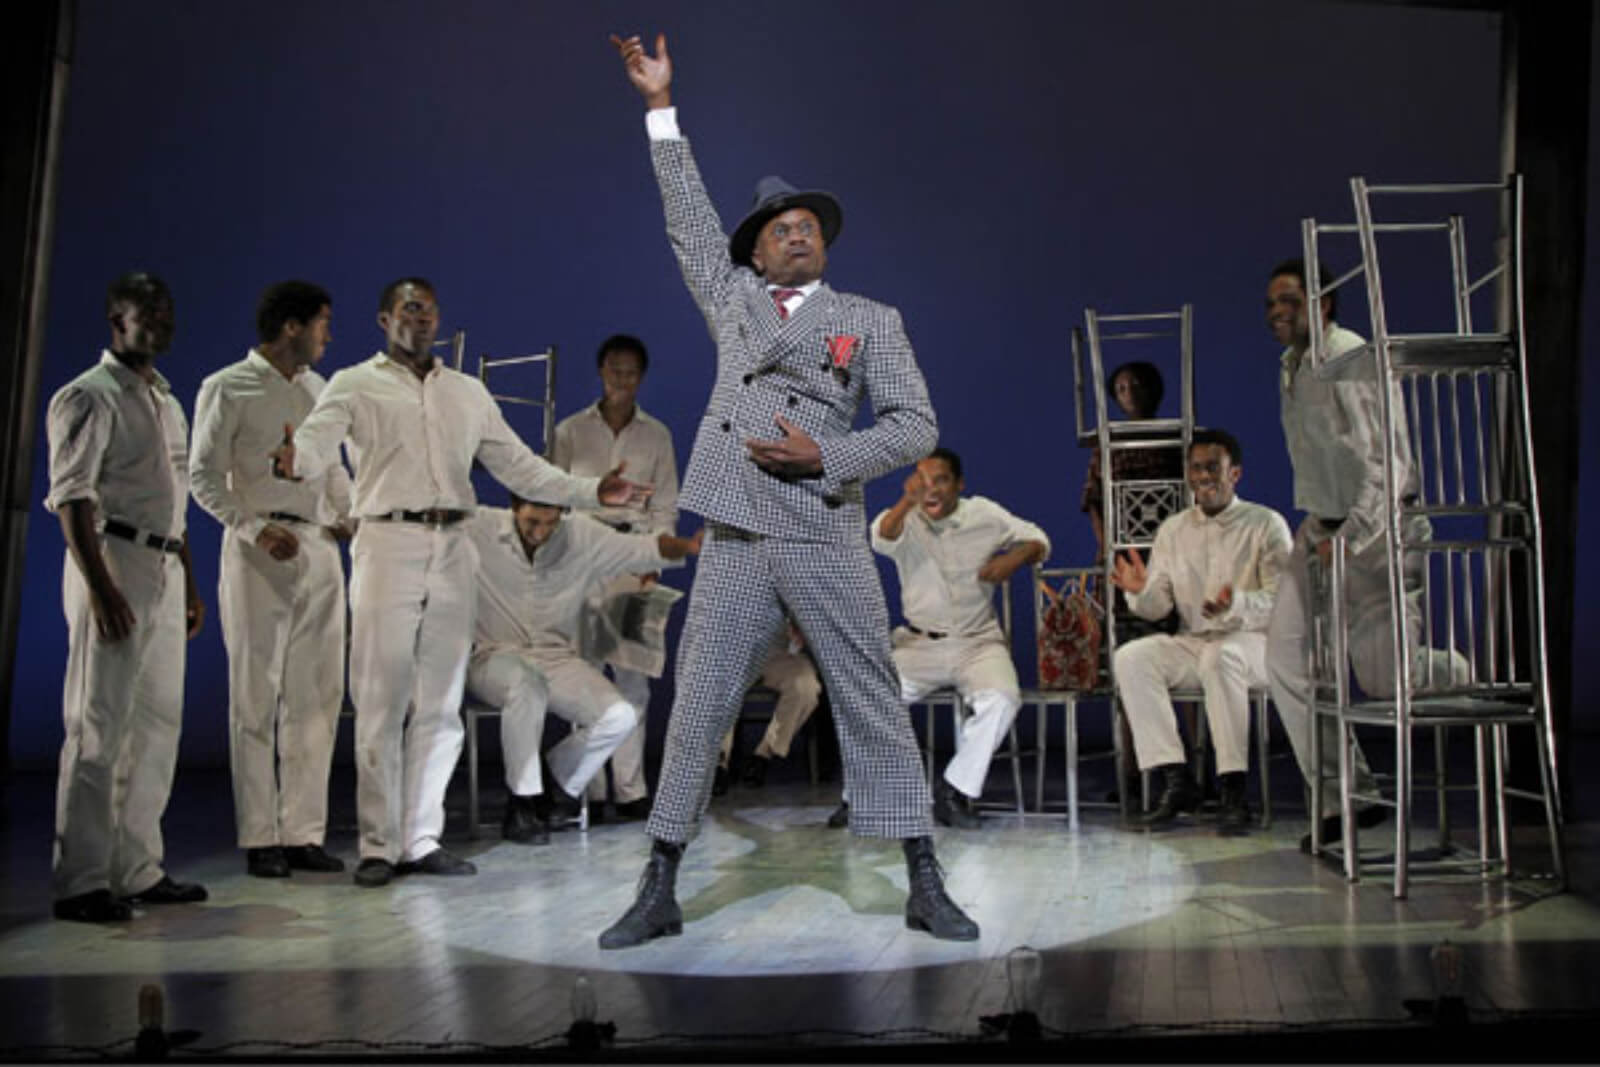 """Mr. Tambo (Forrest McClendon) sings """"Thats Not the Way We Do Things"""" surrounded by The Scottsboro Boys. He is playing the role of lawyer Sam Leibowitz. They are all in a jail cell."""